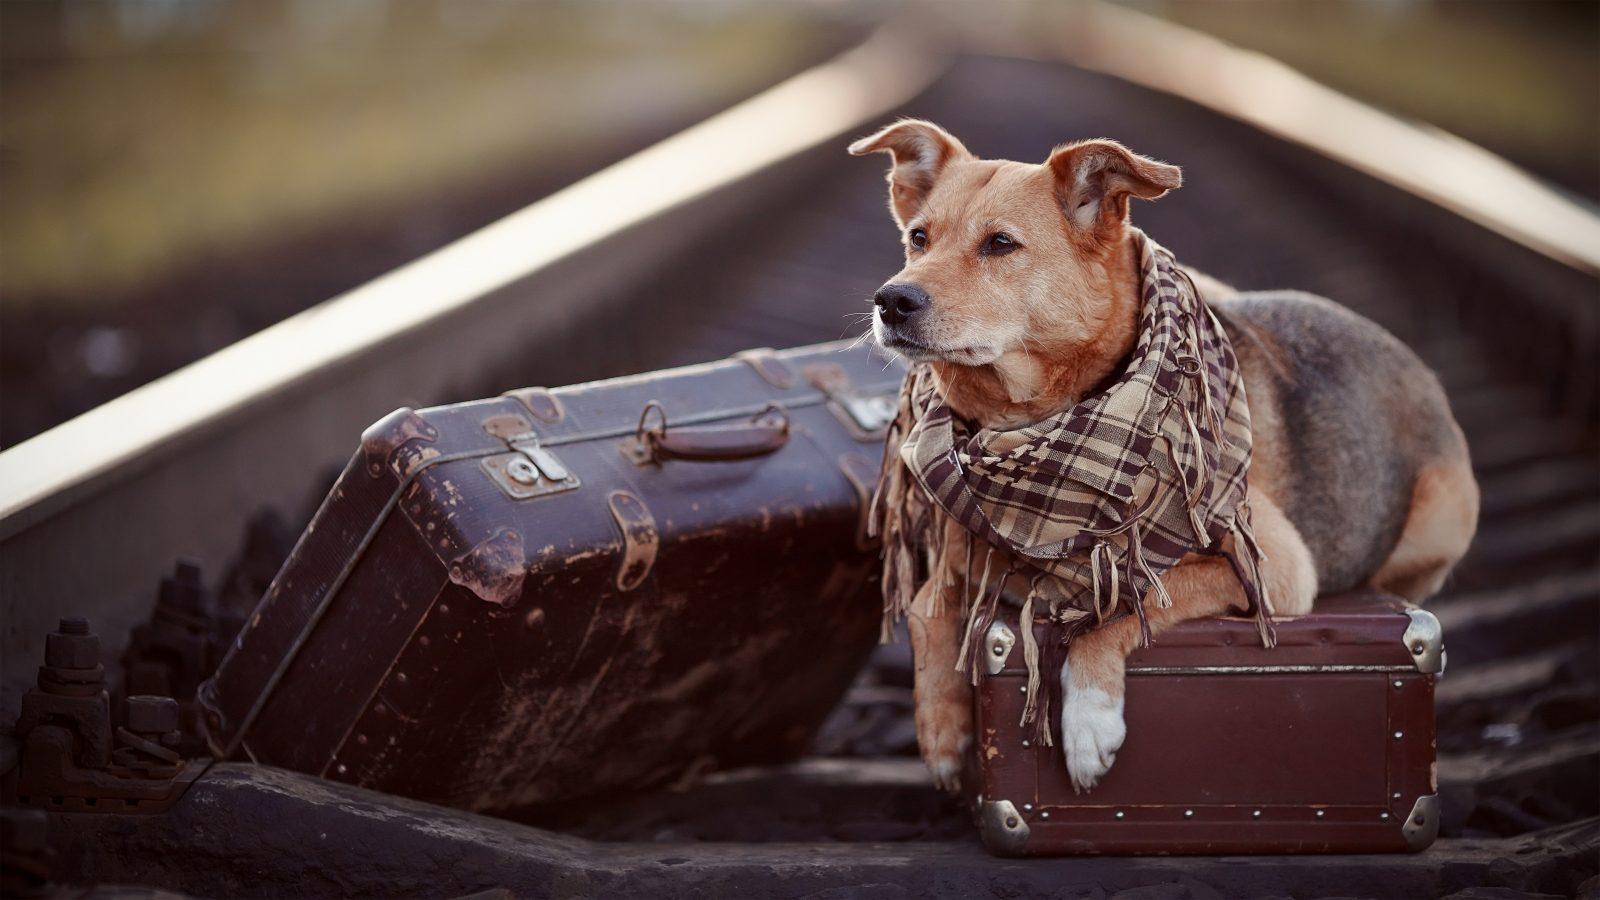 More Pet Owners Plan To Take Their Dog On Holiday This Year